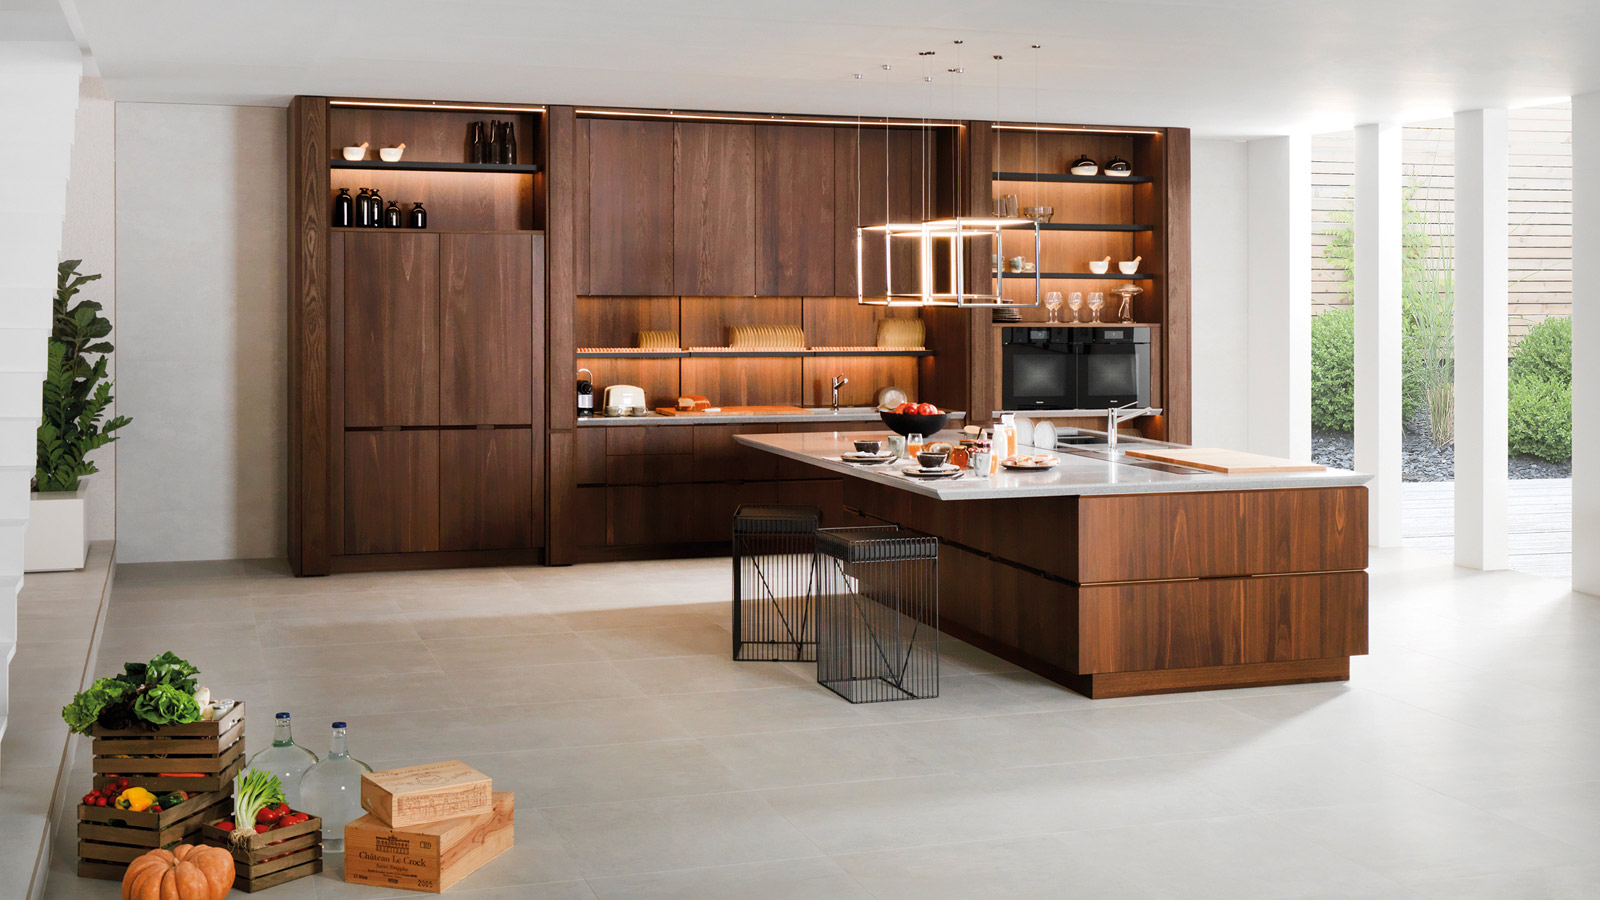 The latest innovations at the 26th PORCELANOSA Group International Exhibition  Smart kitchens and cutting-edge bathrooms by Gamadecor define the future